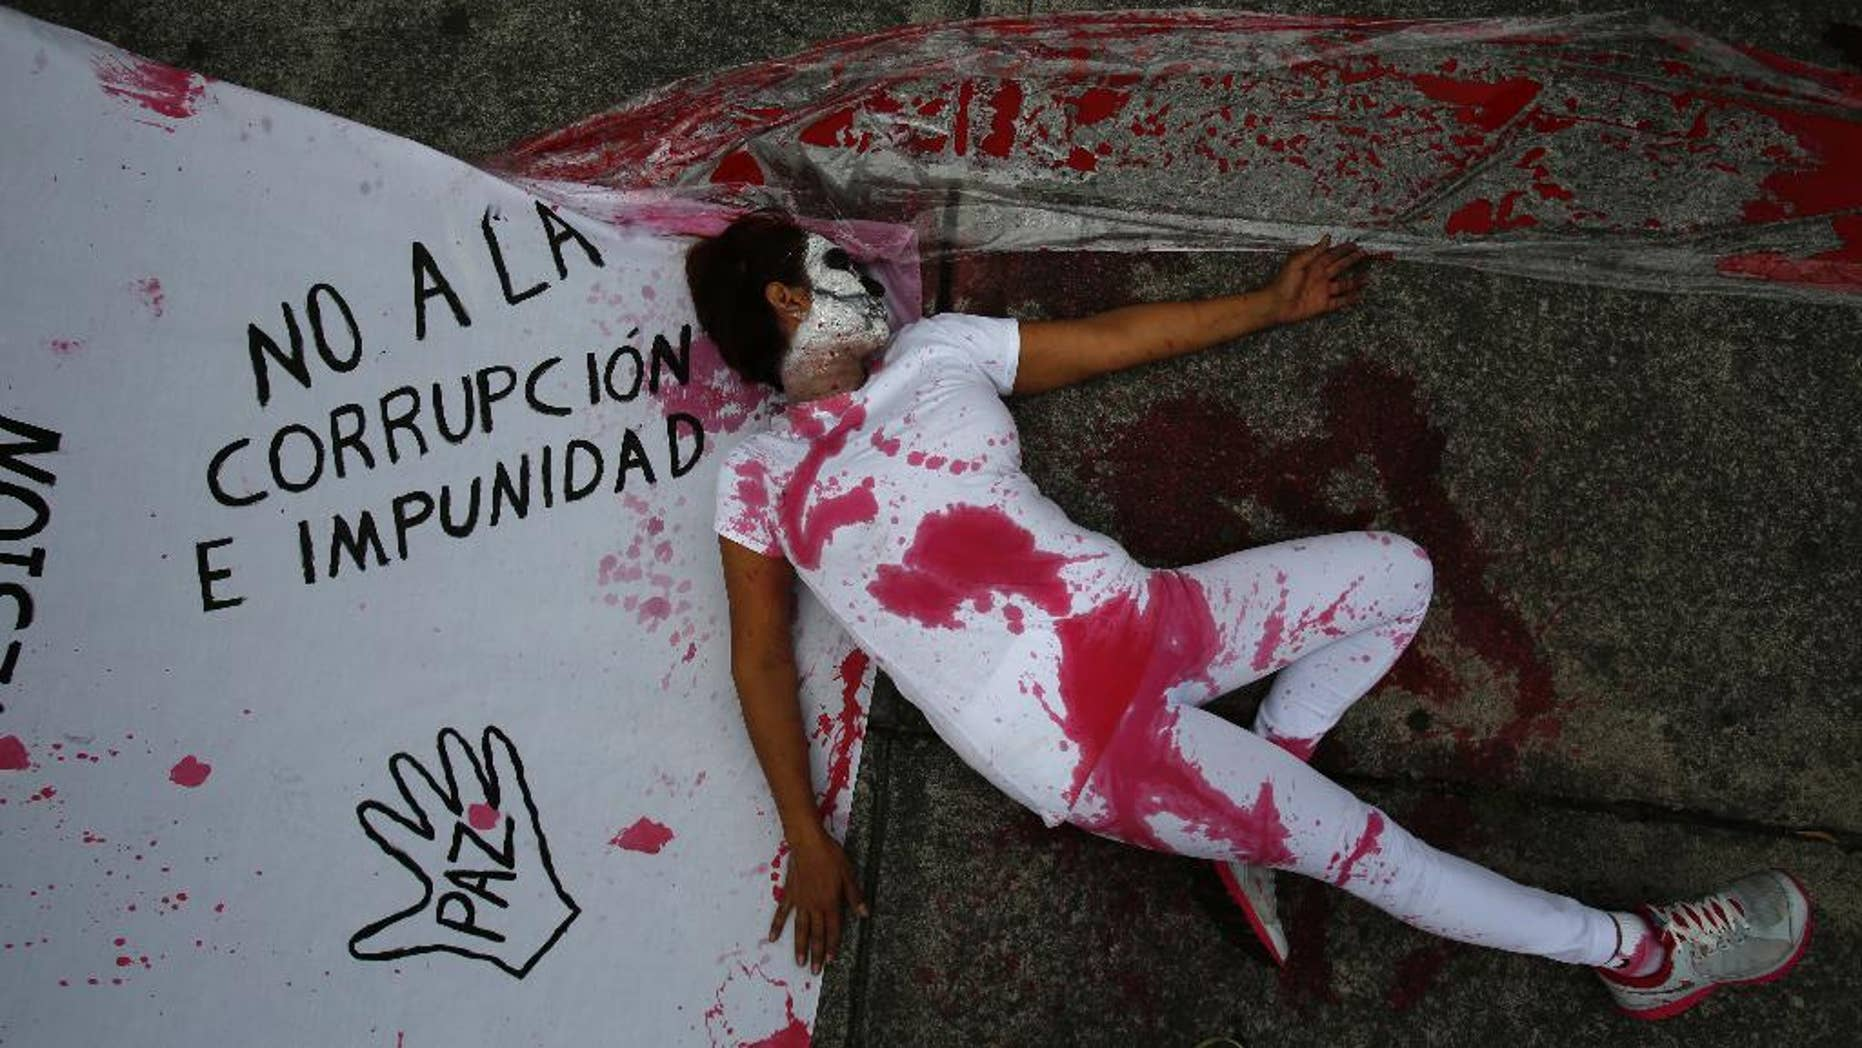 A protestor stained with fake blood lies beside a sheet marked with slogans protesting corruption and impunity as well as government repression, outside the offices of congress in Mexico City, Thursday, Sept. 1, 2016. When President Enrique Pena Nieto delivers his annual report to congress on Thursday, he'll reflect on a year that has seen rising homicide rates, a sluggish economy and a midterm electoral rout of his party. His administration has also been stung by a string of scandals as well as reports of alleged torture and human rights abuses by police and troops. (AP Photo/Rebecca Blackwell)